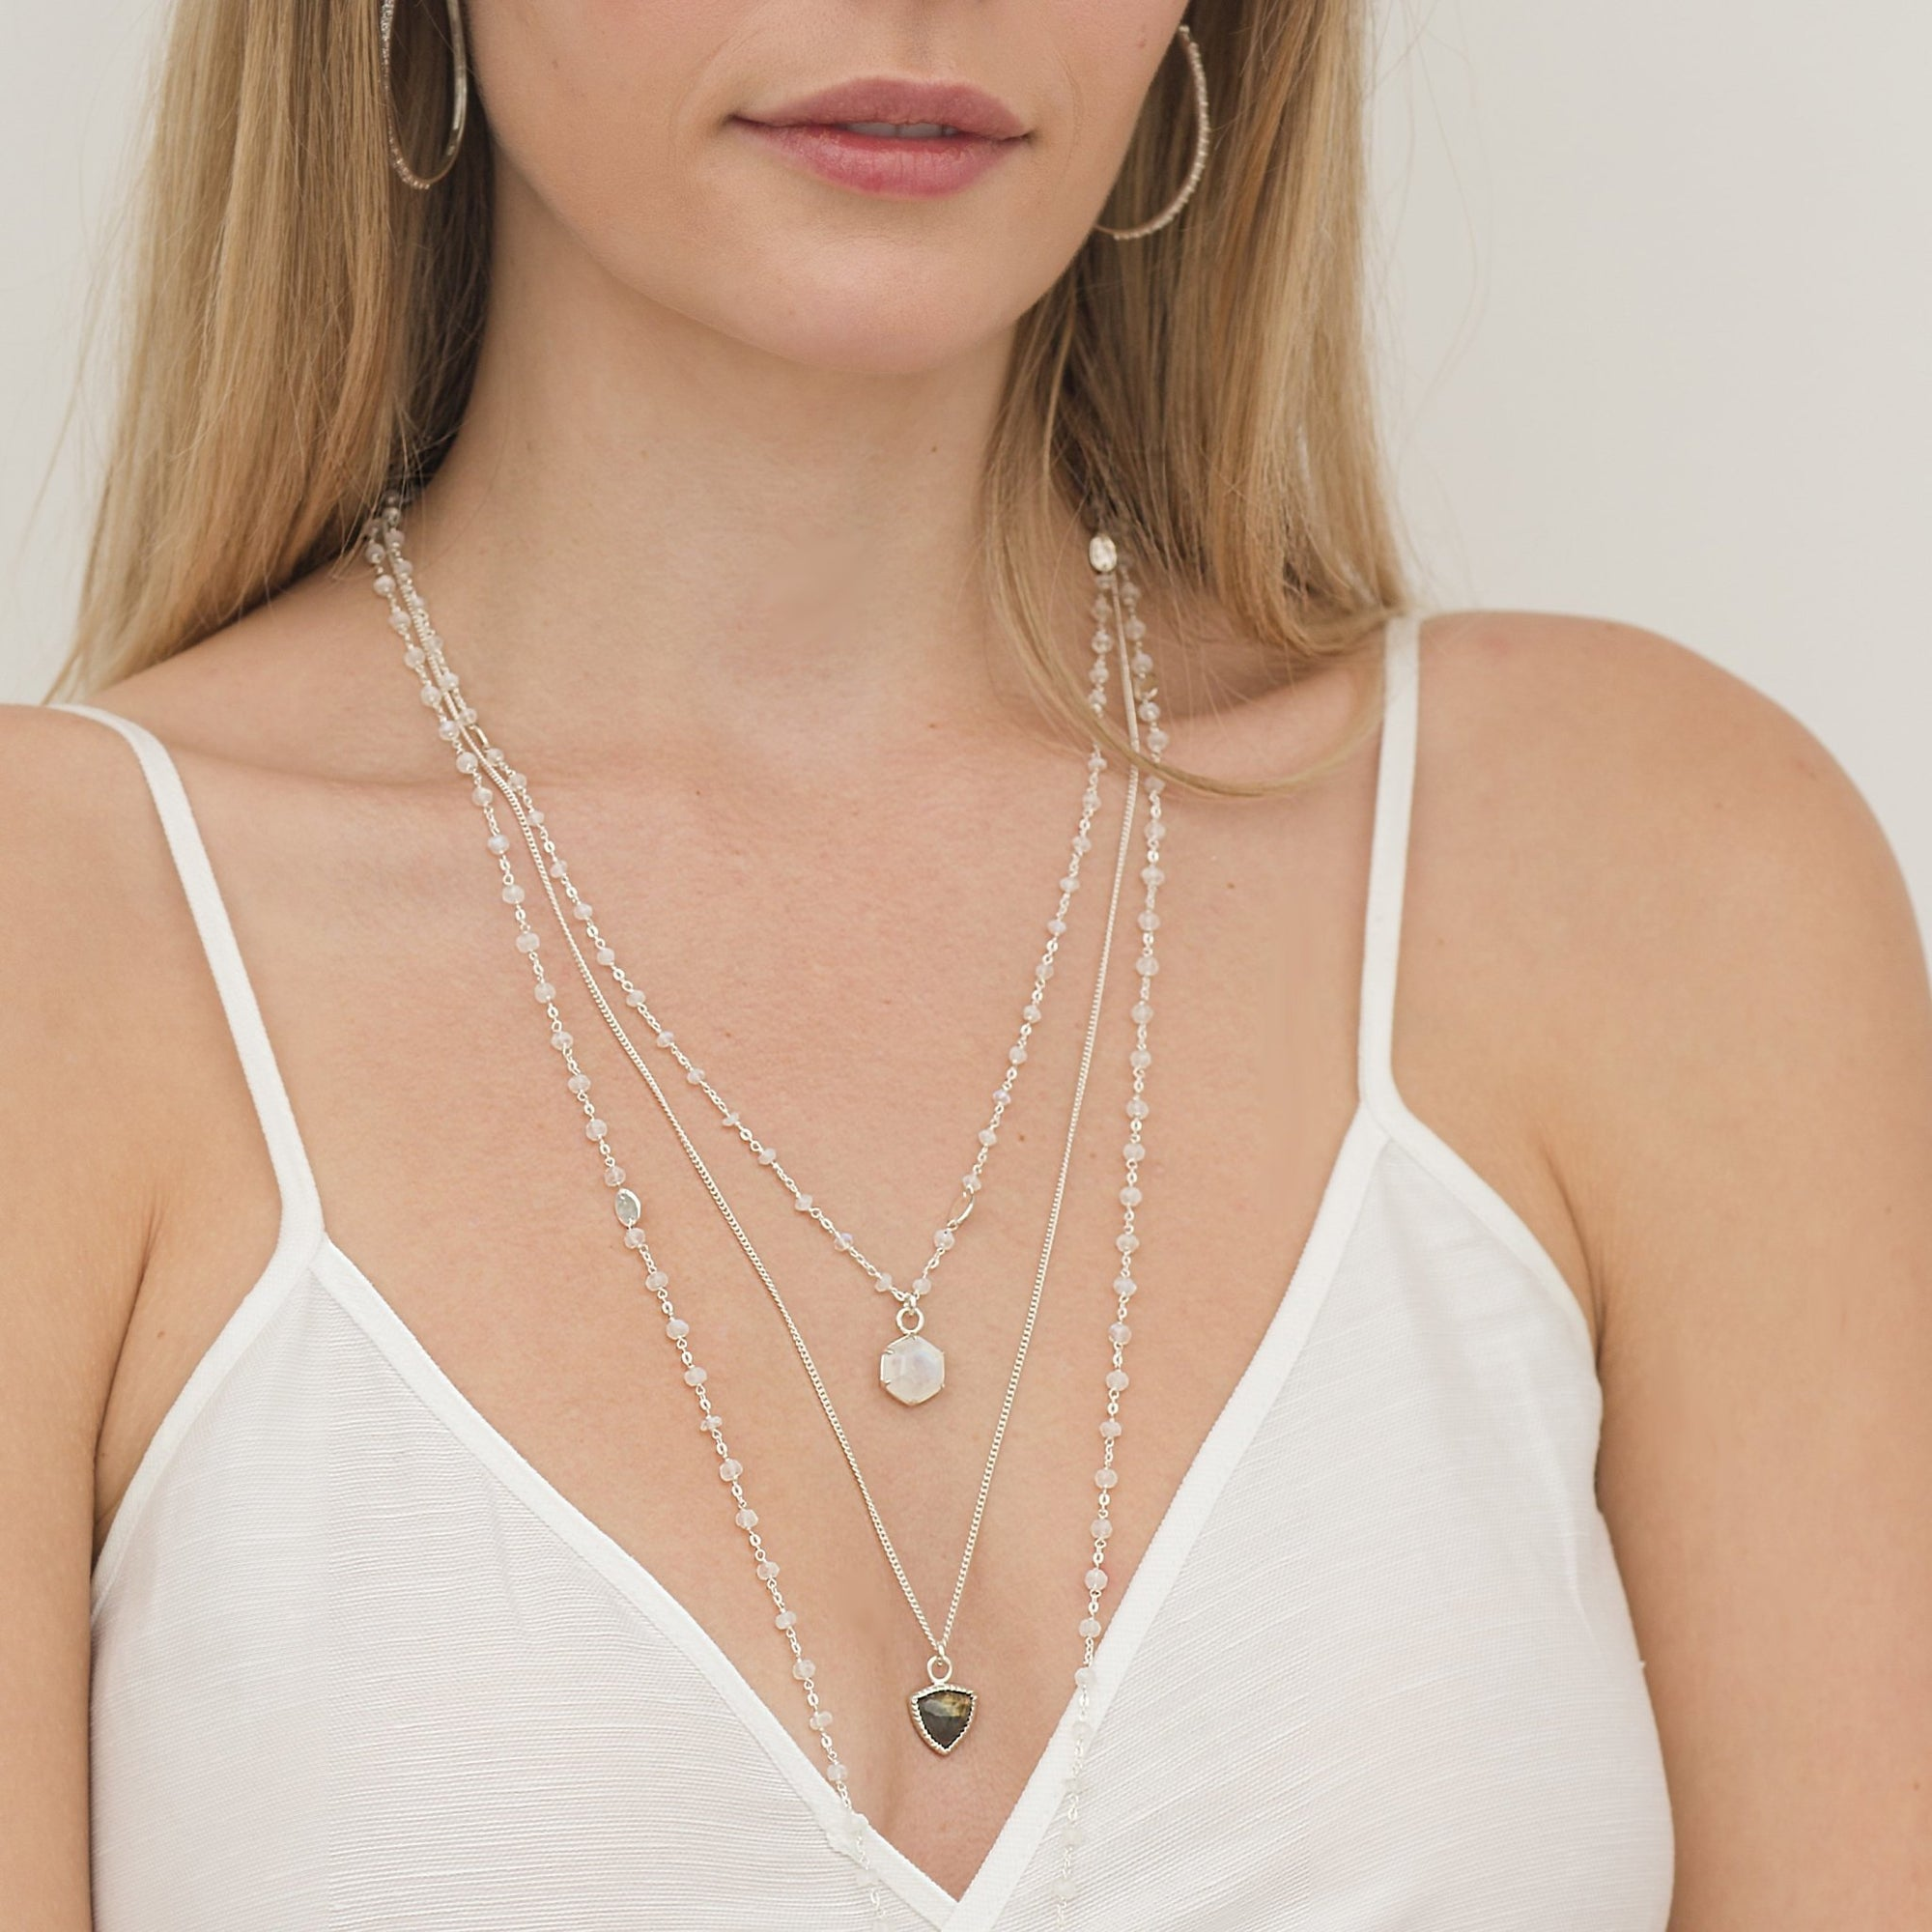 FREEDOM ICON - LABRADORITE & SILVER - SO PRETTY CARA COTTER